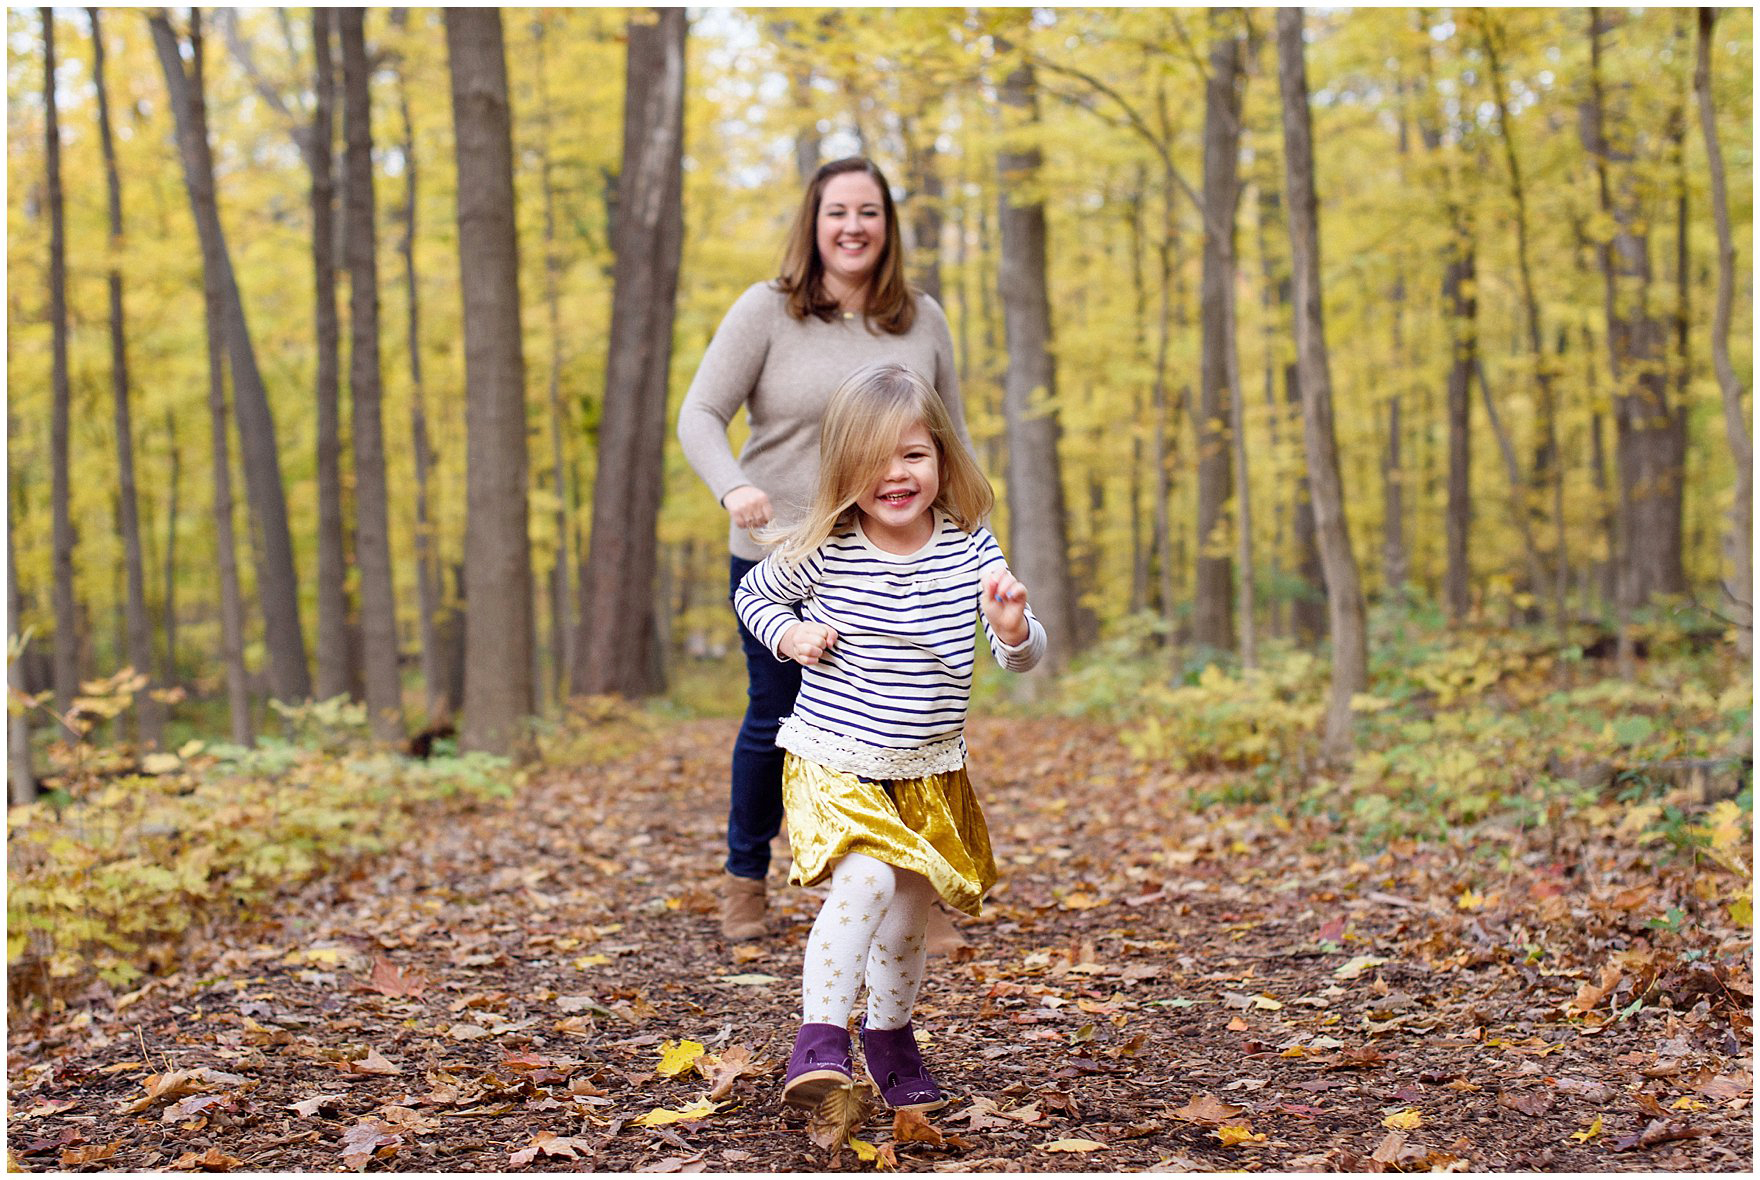 A young girl runs through a forest of golden leaves during a Morton Arboretum fall family session.